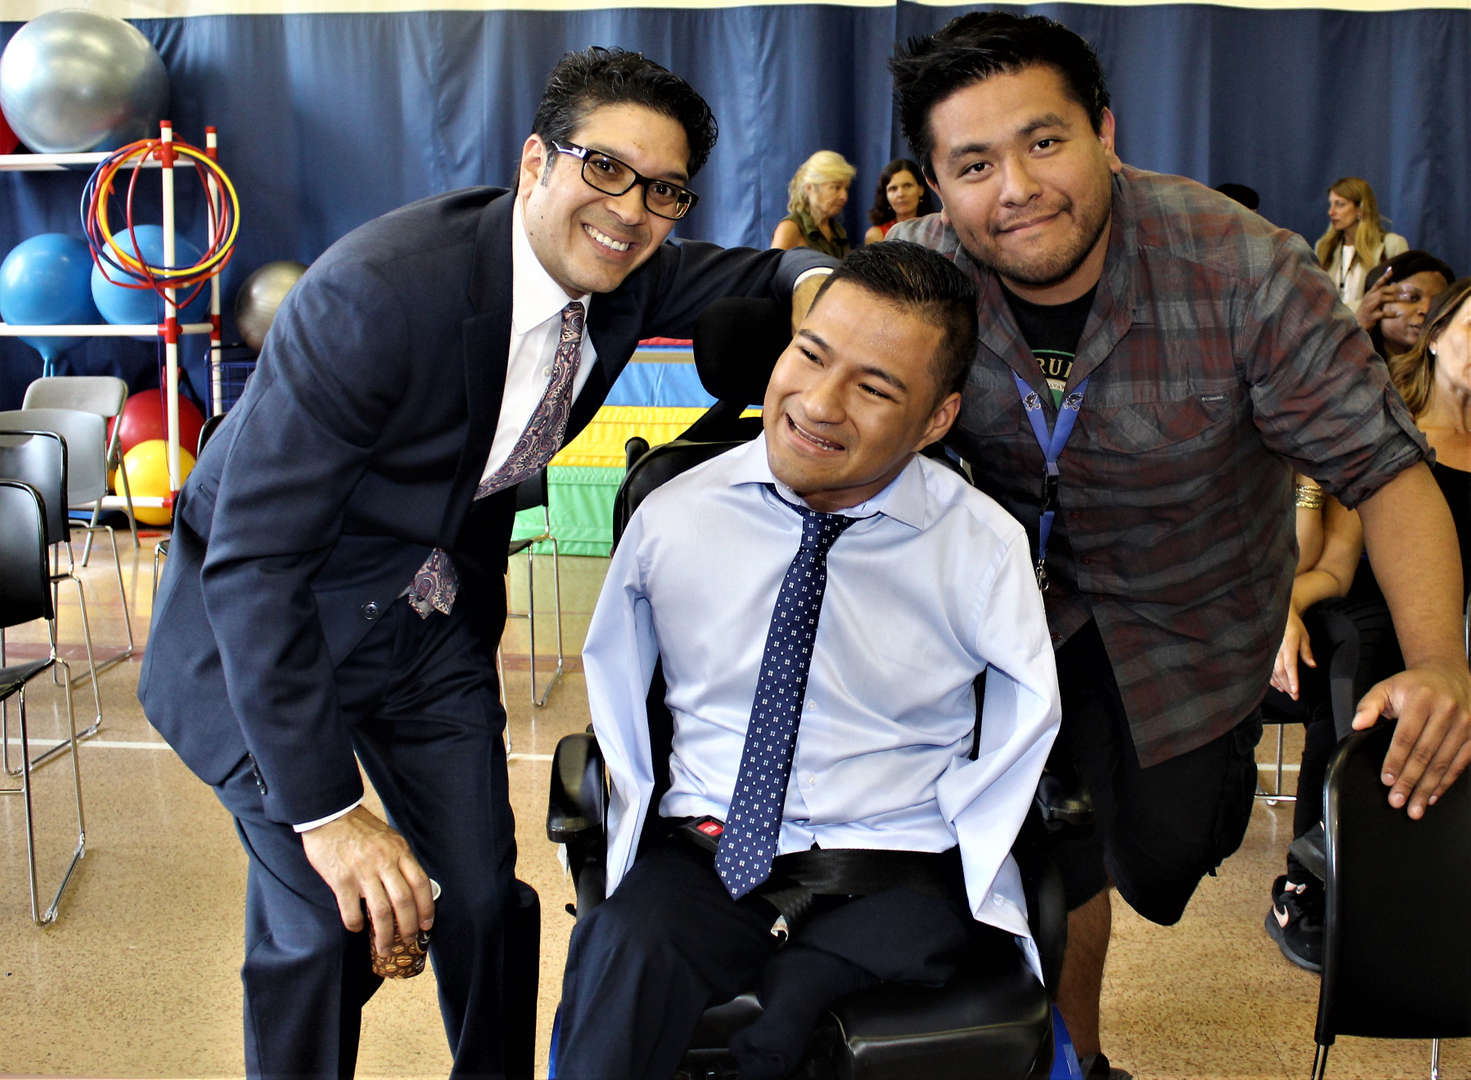 School staff pose with graduate Steven Arellano for a photo.